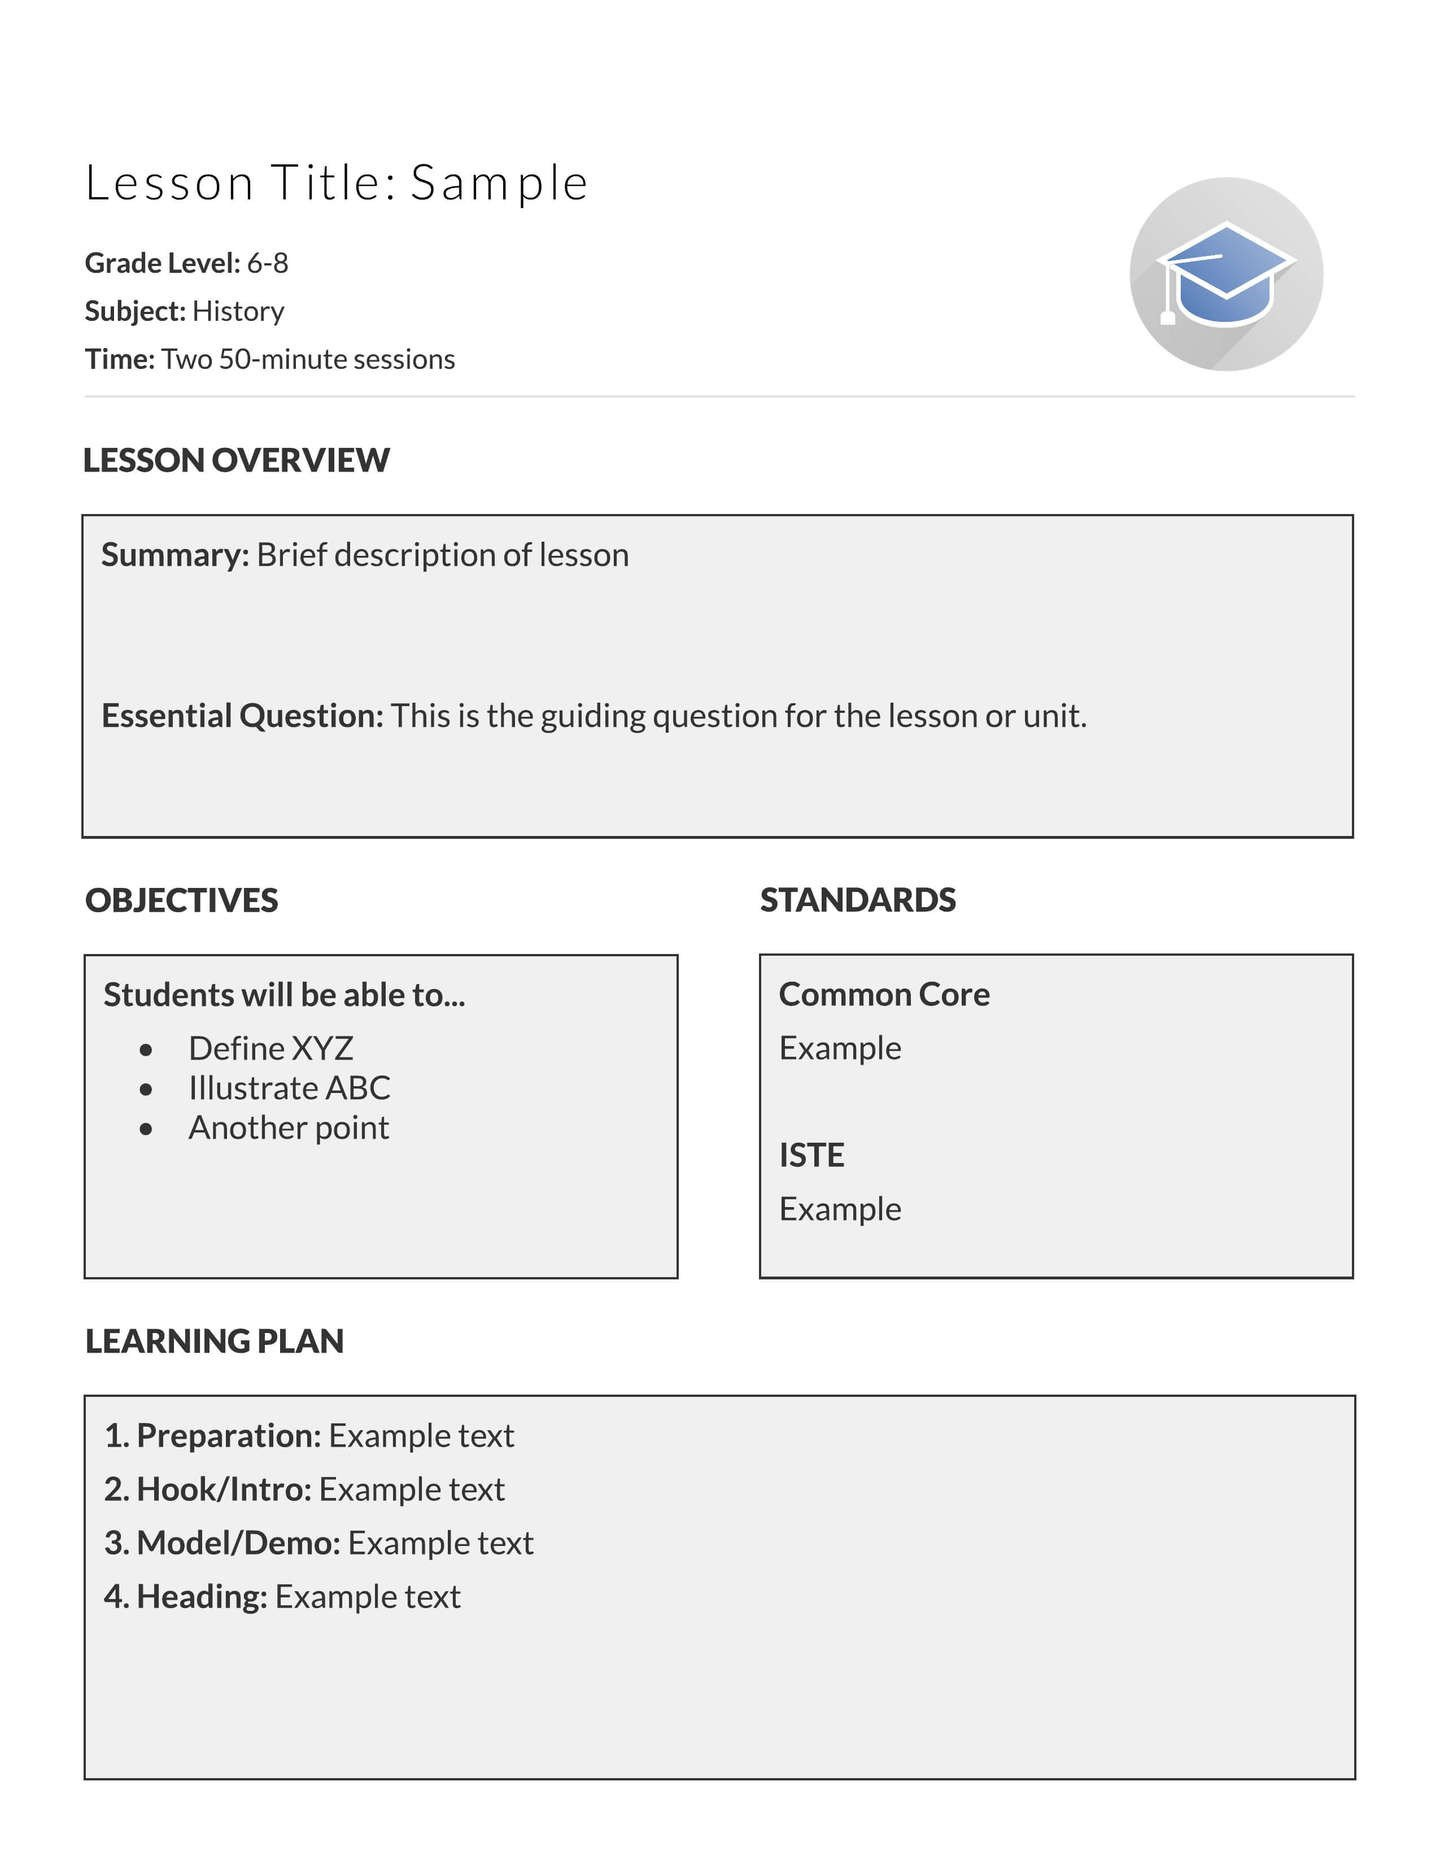 Free Lesson Plan Templates 5 Free Lesson Plan Templates & Examples Lucidpress